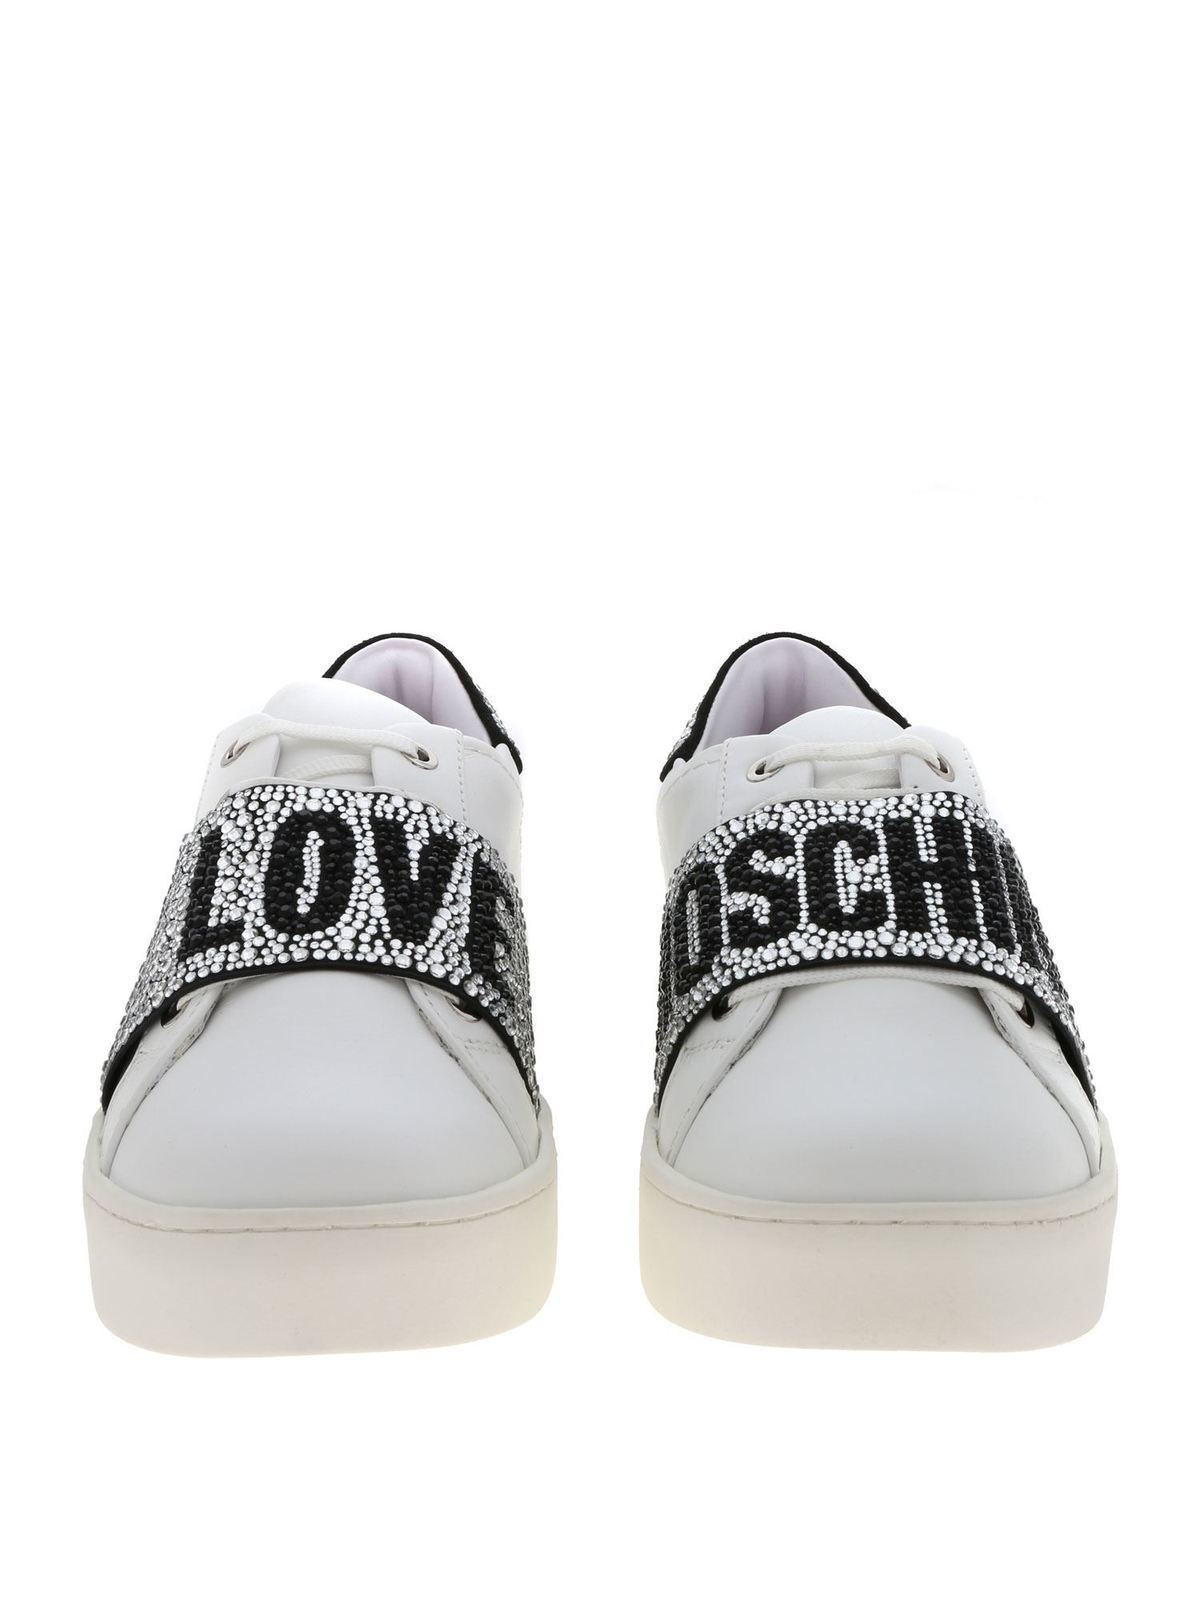 White sneakers with rhinestone band